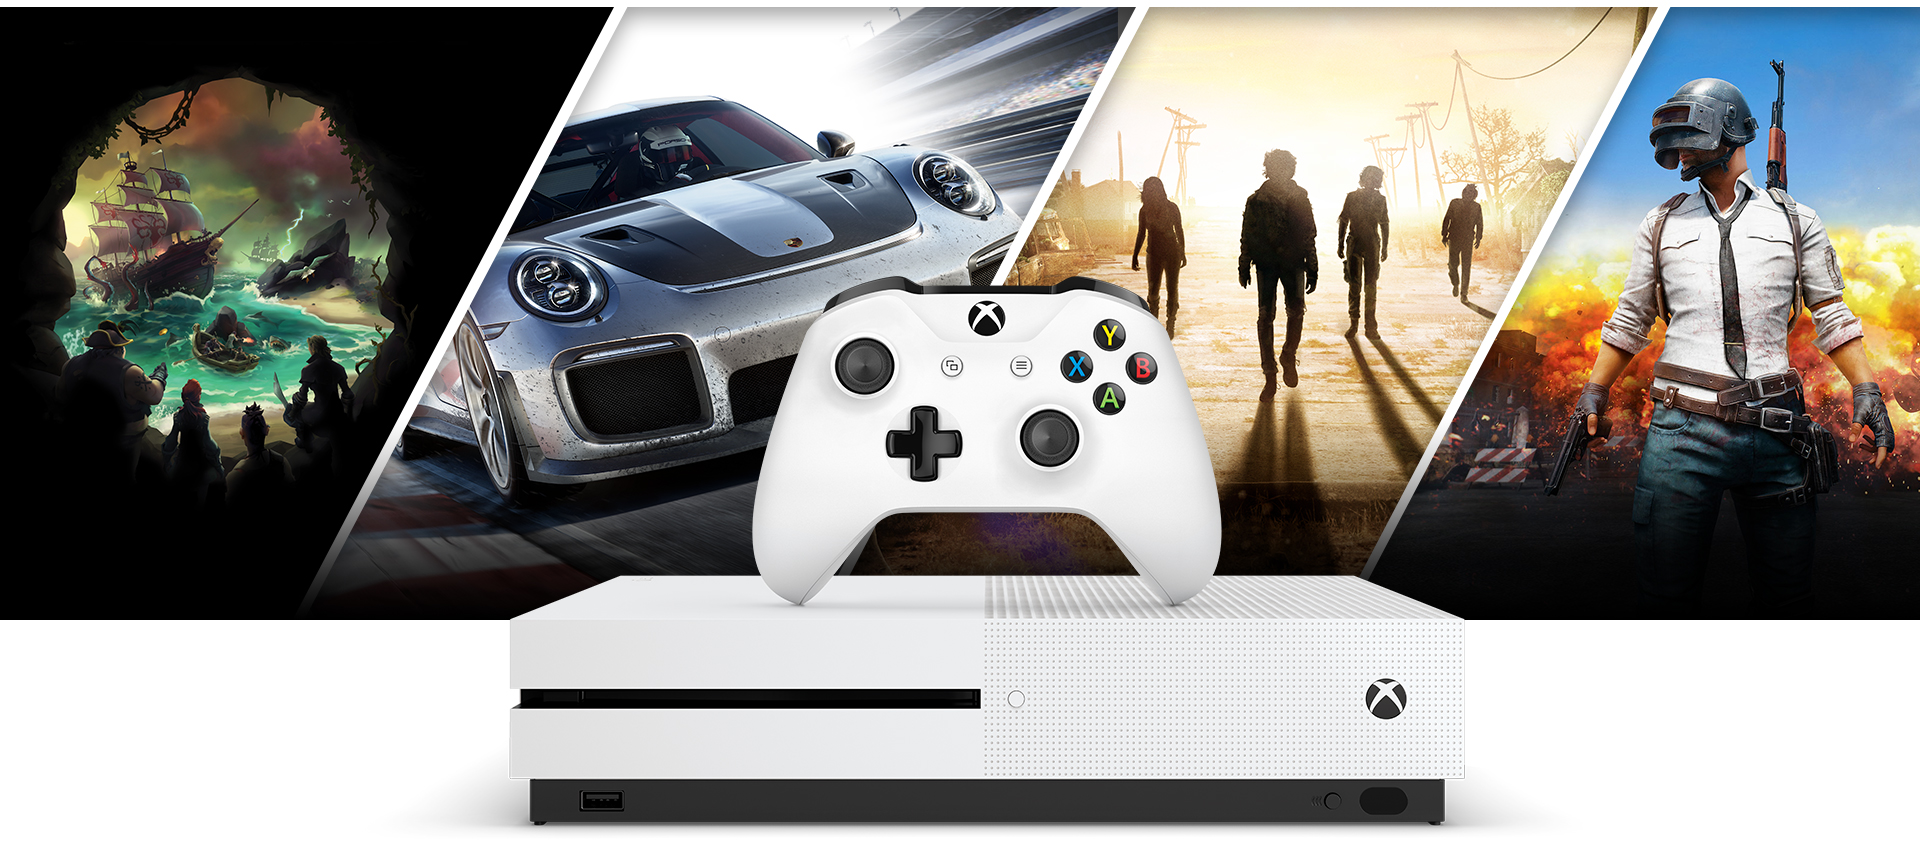 Images de Sea of Thieves, Forza 7, State of Decay 3 et Player Unknown's Battlegrounds derrière une console Xbox One S et une manette Xbox blanches